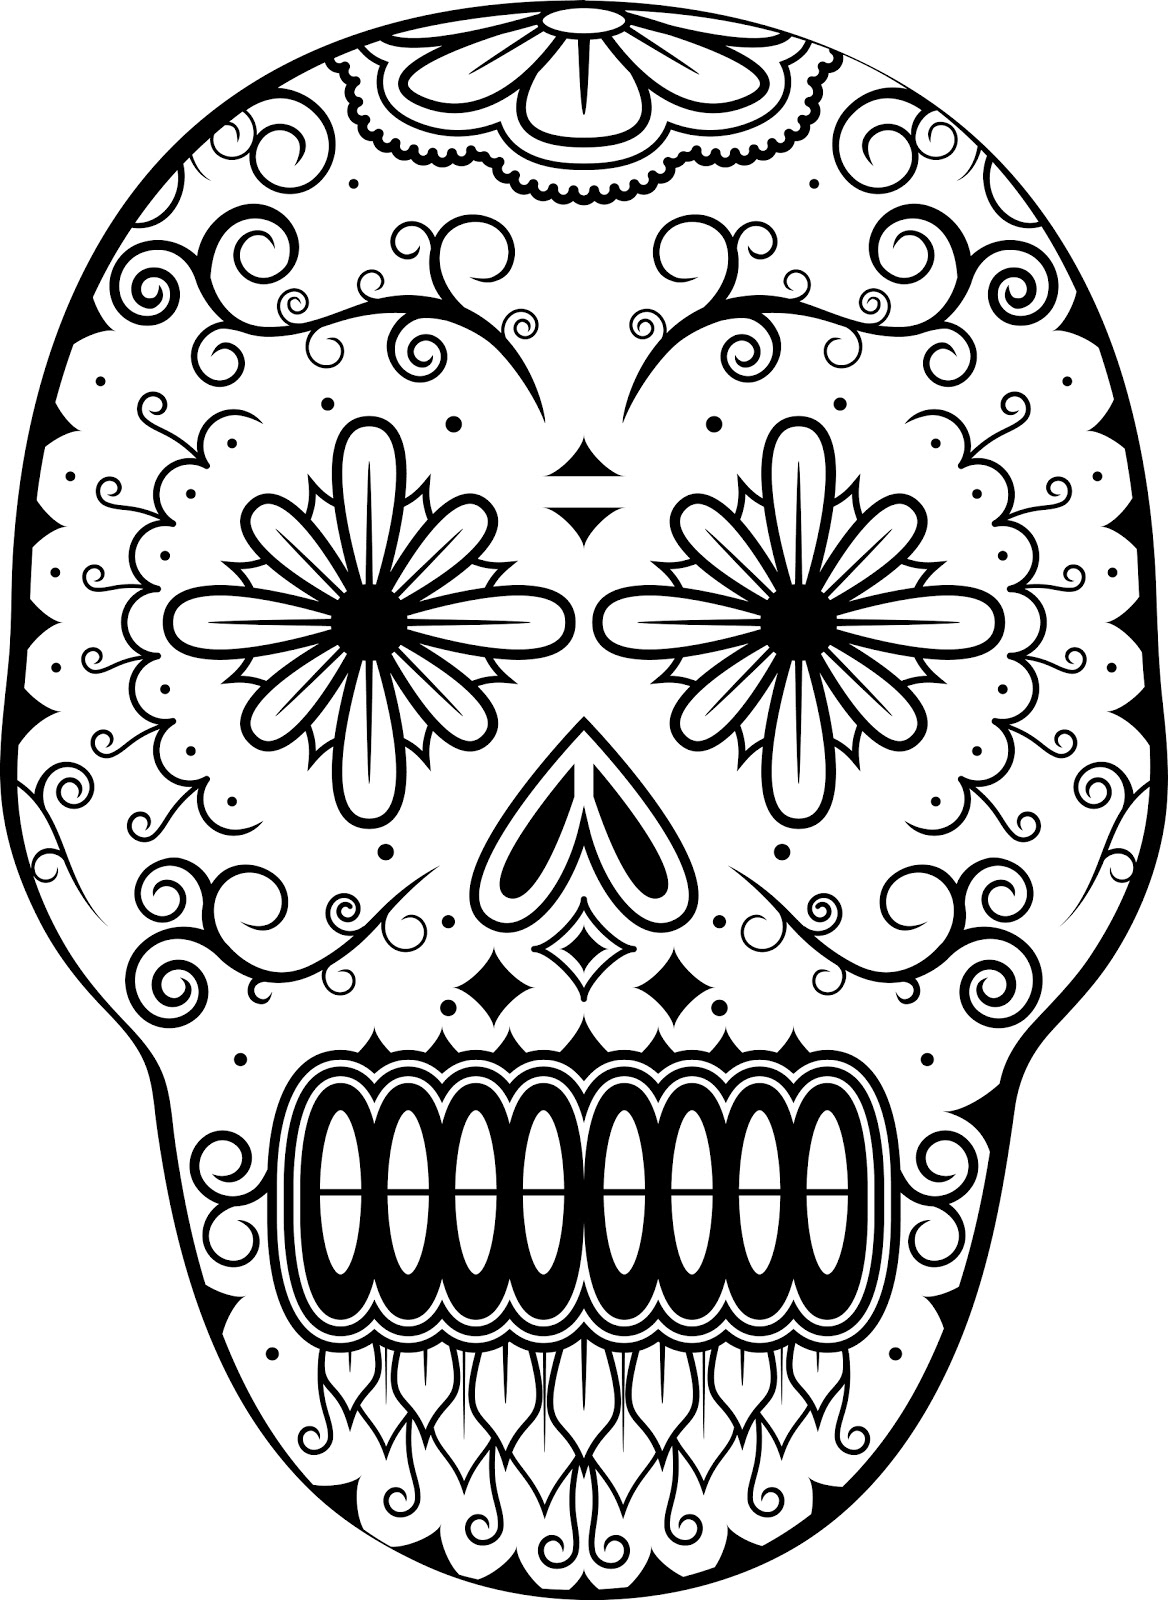 All souls day coloring pages free coloring pages for Dia de los muertos coloring pages printable